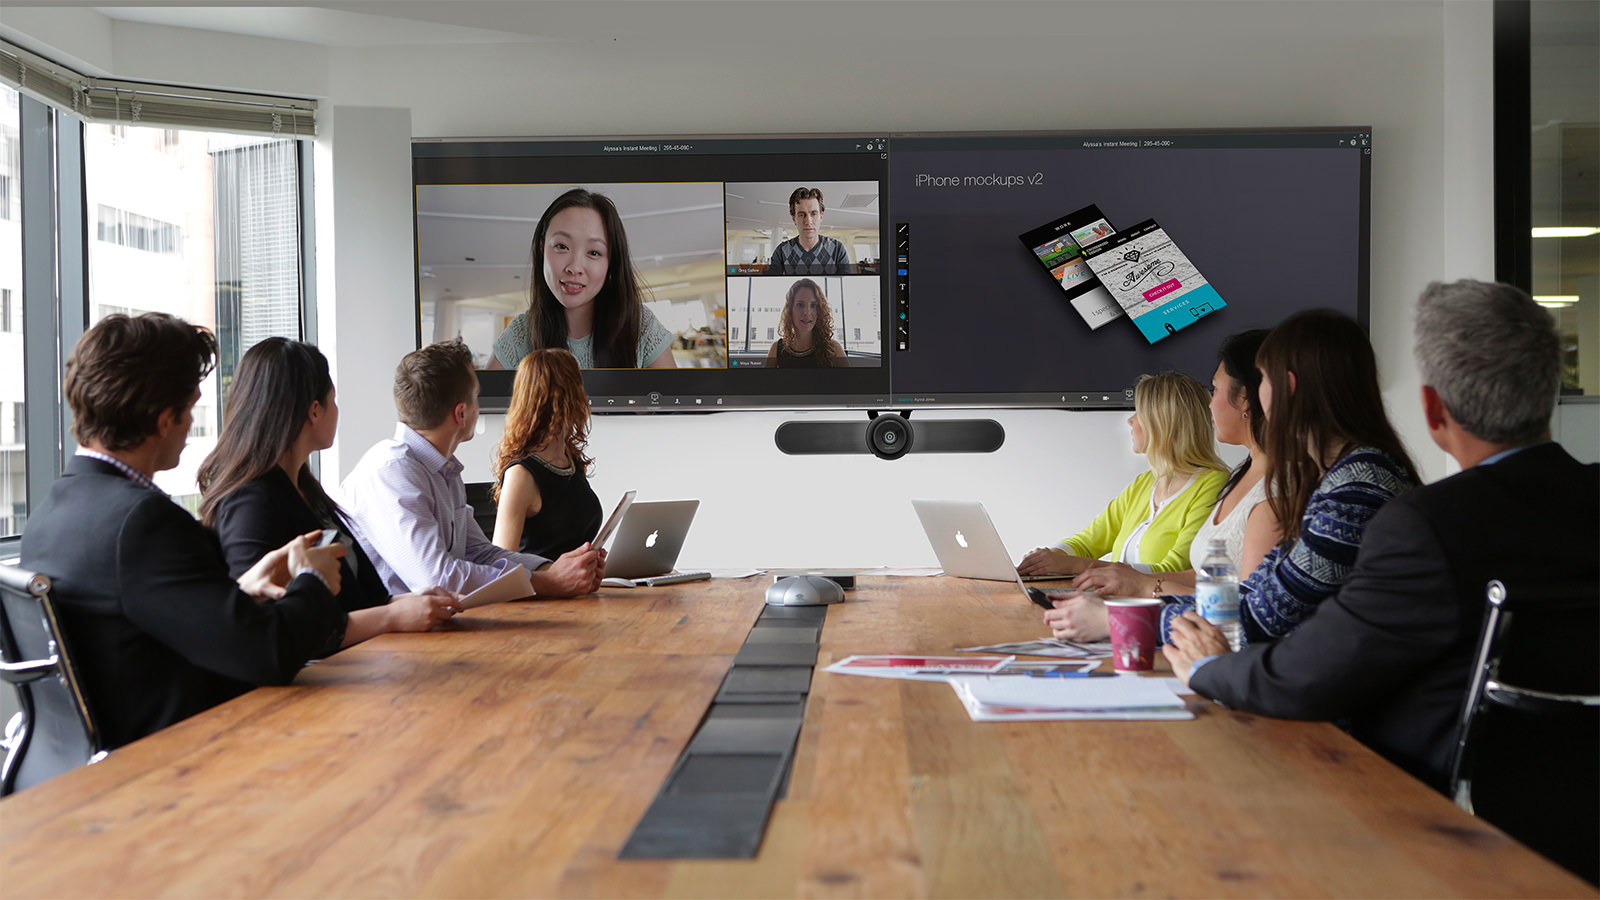 The 7 Best Video Meeting Apps